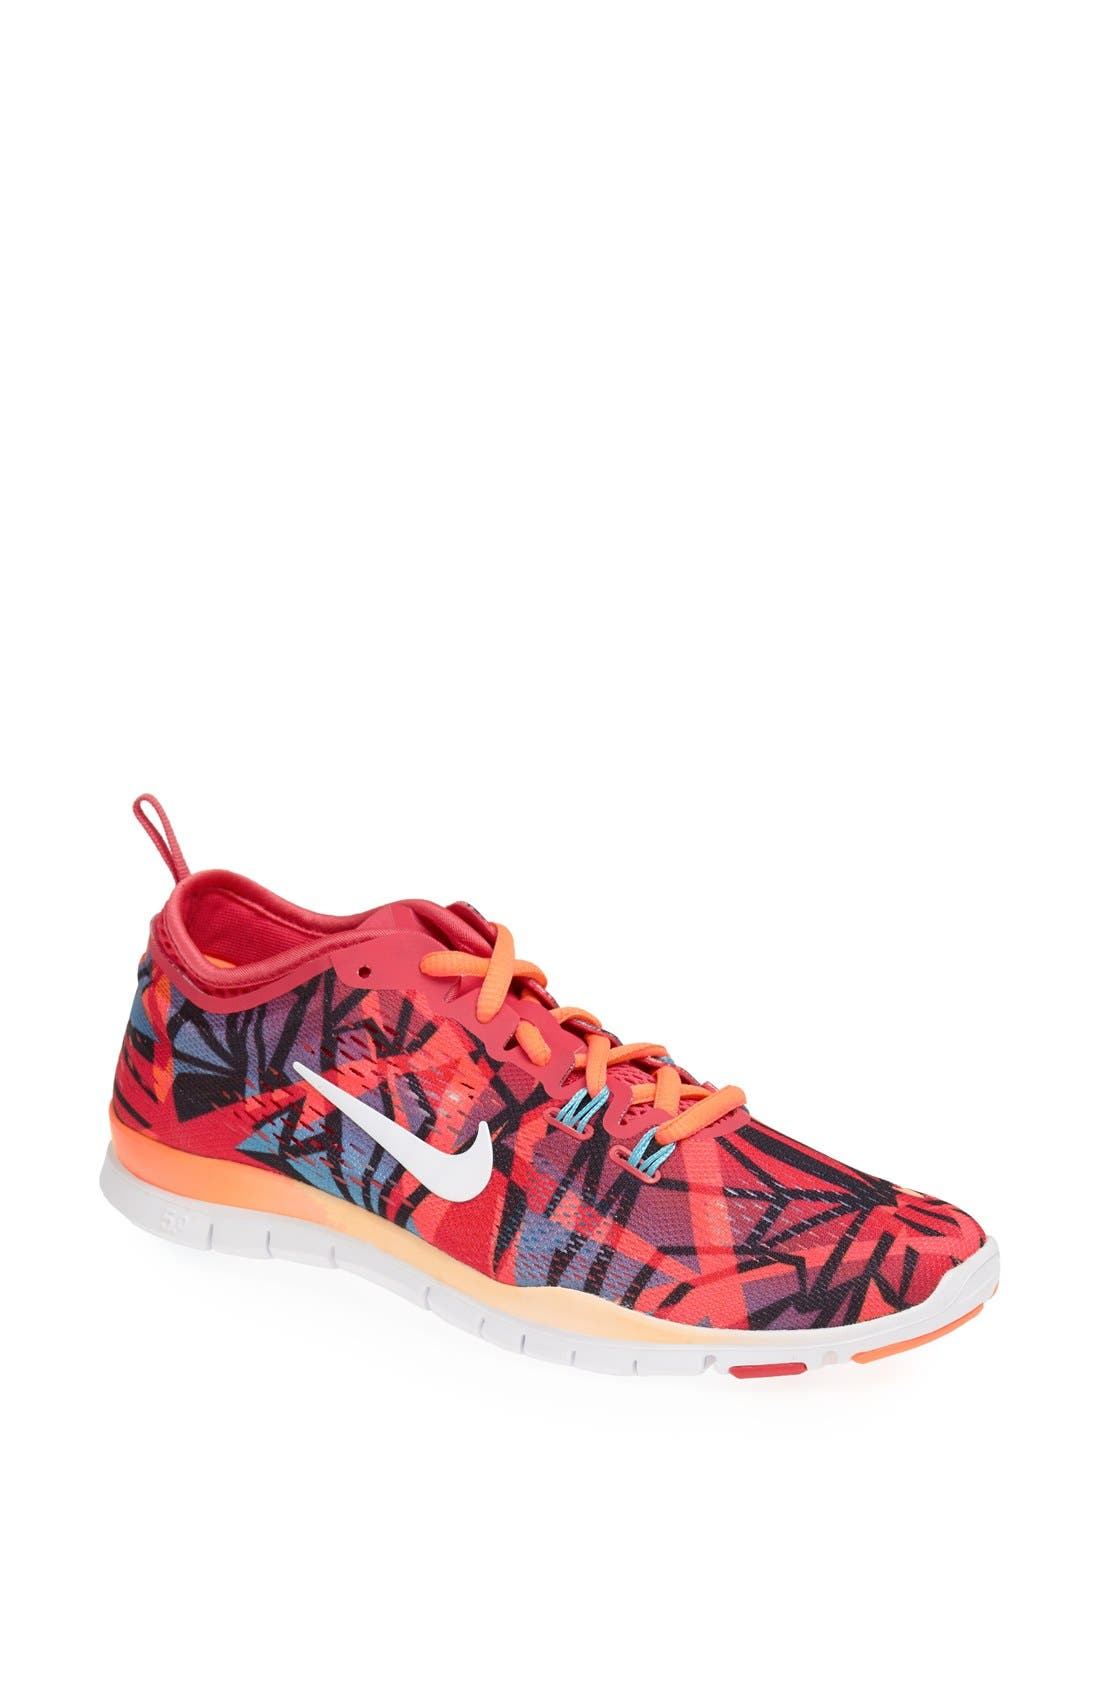 Alternate Image 1 Selected - Nike 'Free 5.0 TR Fit 4' Print Training Shoe (Women)